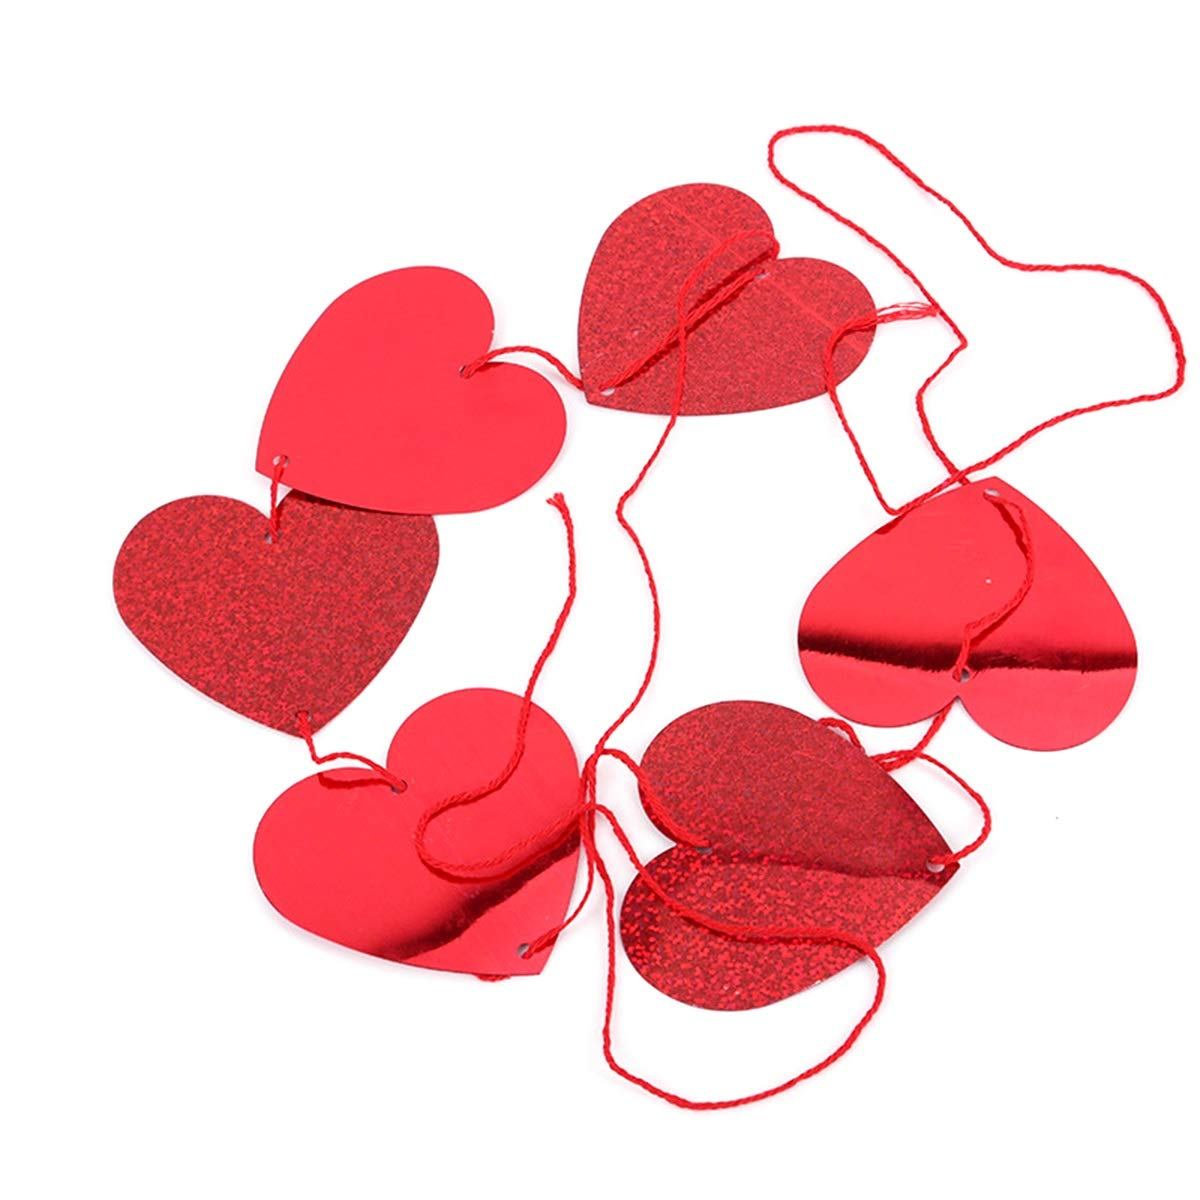 DEALPEAK 1PC Or 8PCS Heart Hanging Garland Heart Shaped Strip for Wedding Party Decoration and Valentine's Day (UnitCount : 1pc Heart String)